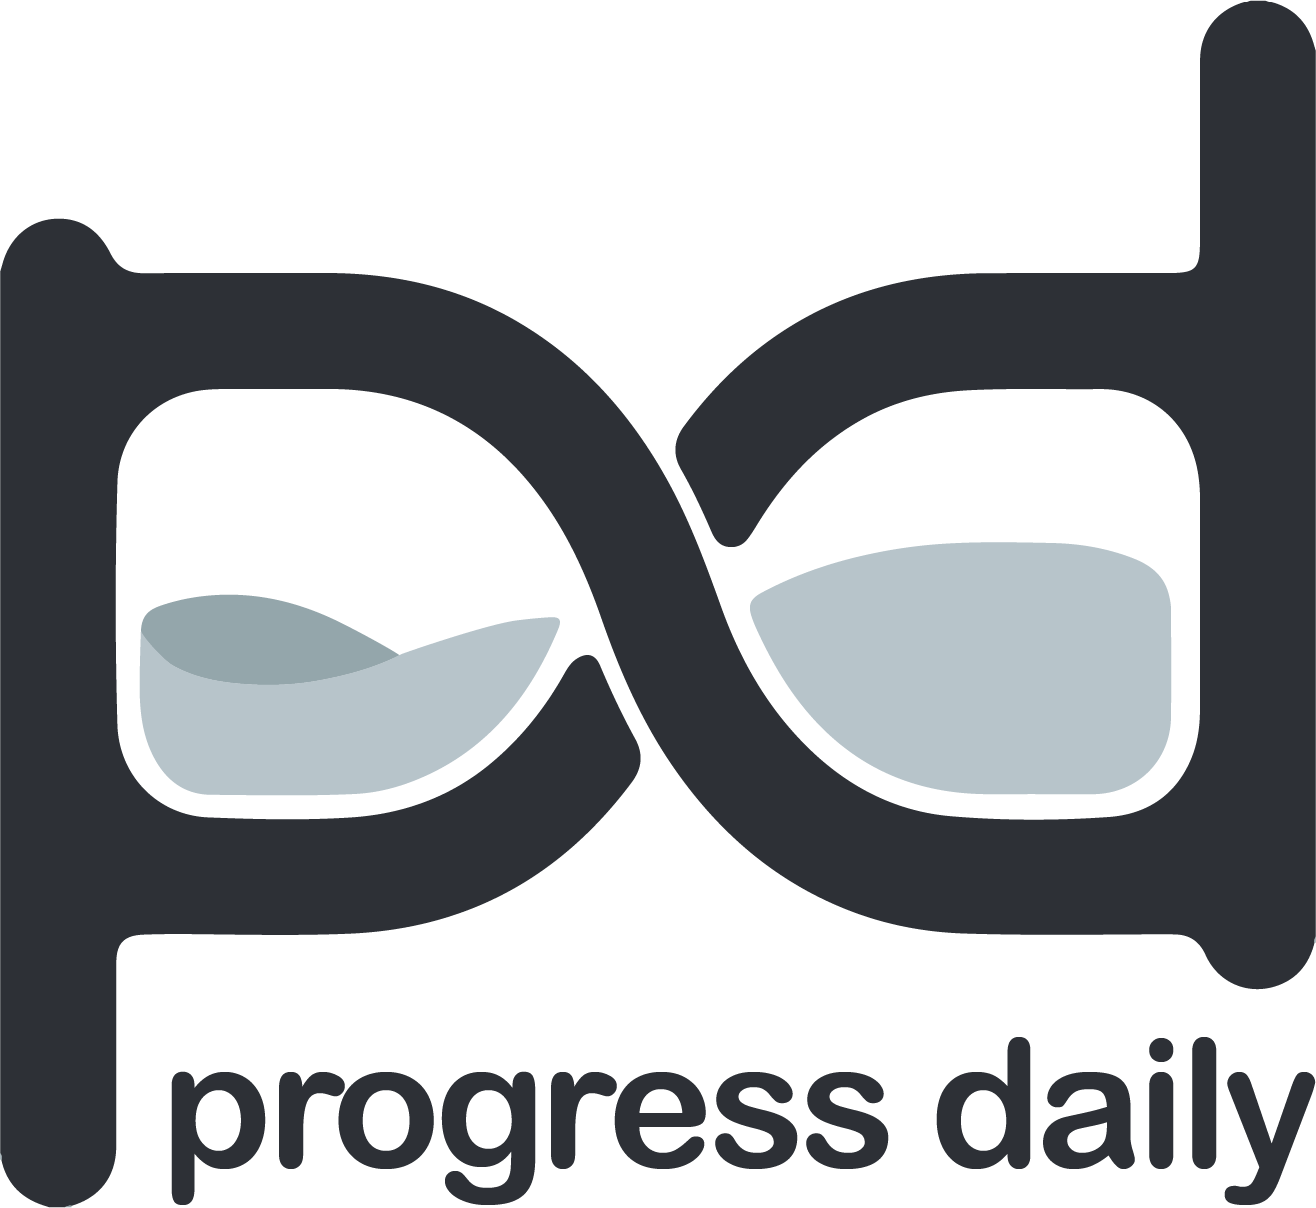 Progress Daily